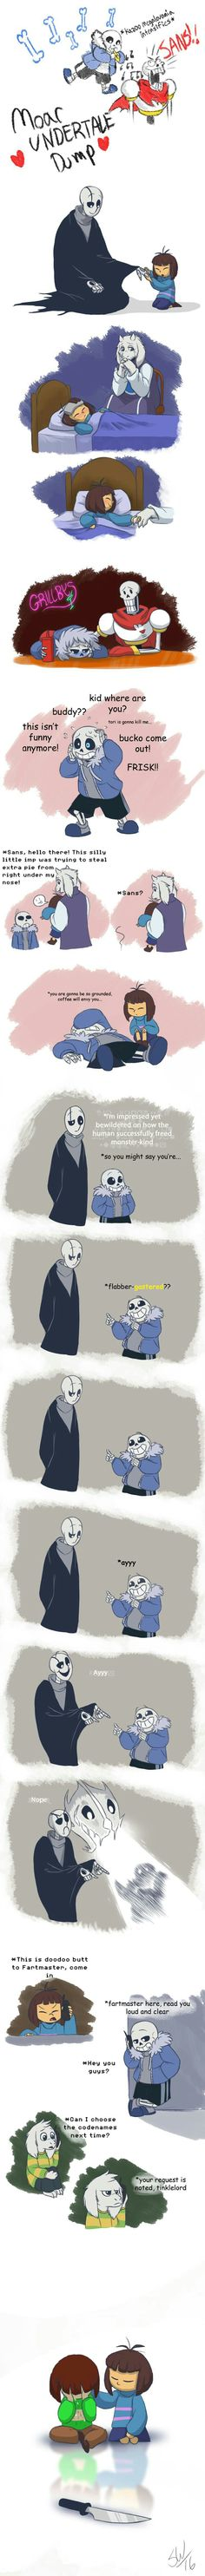 Sans is also... Not best parent sometimes...